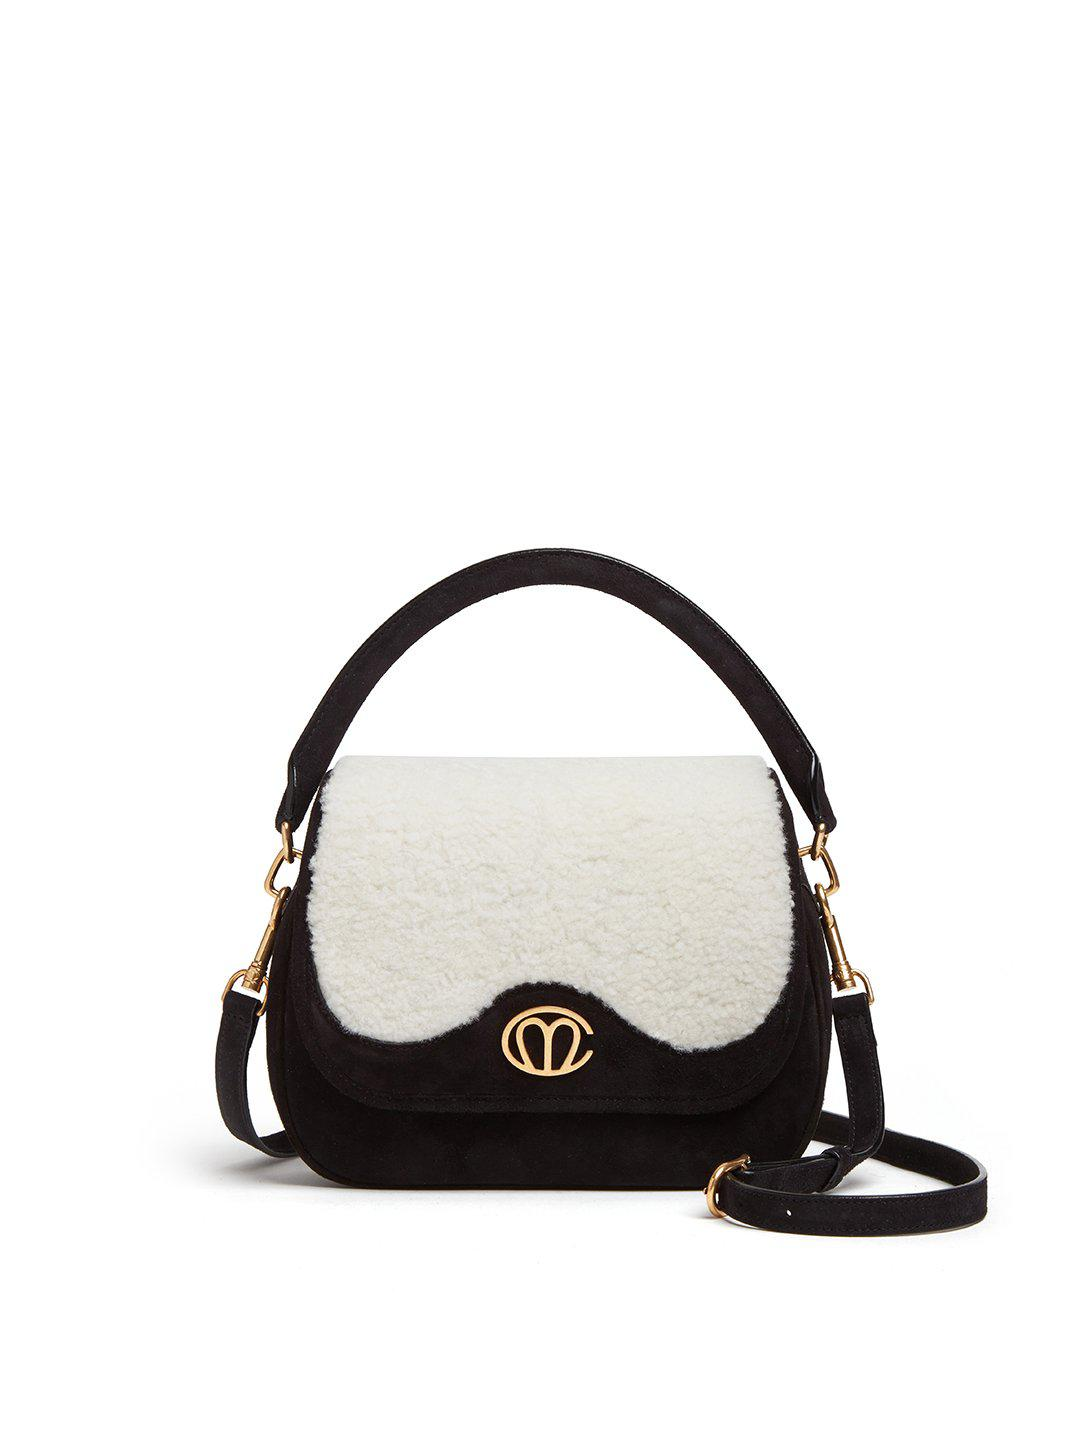 Christy Small Suede Top Handle Bag